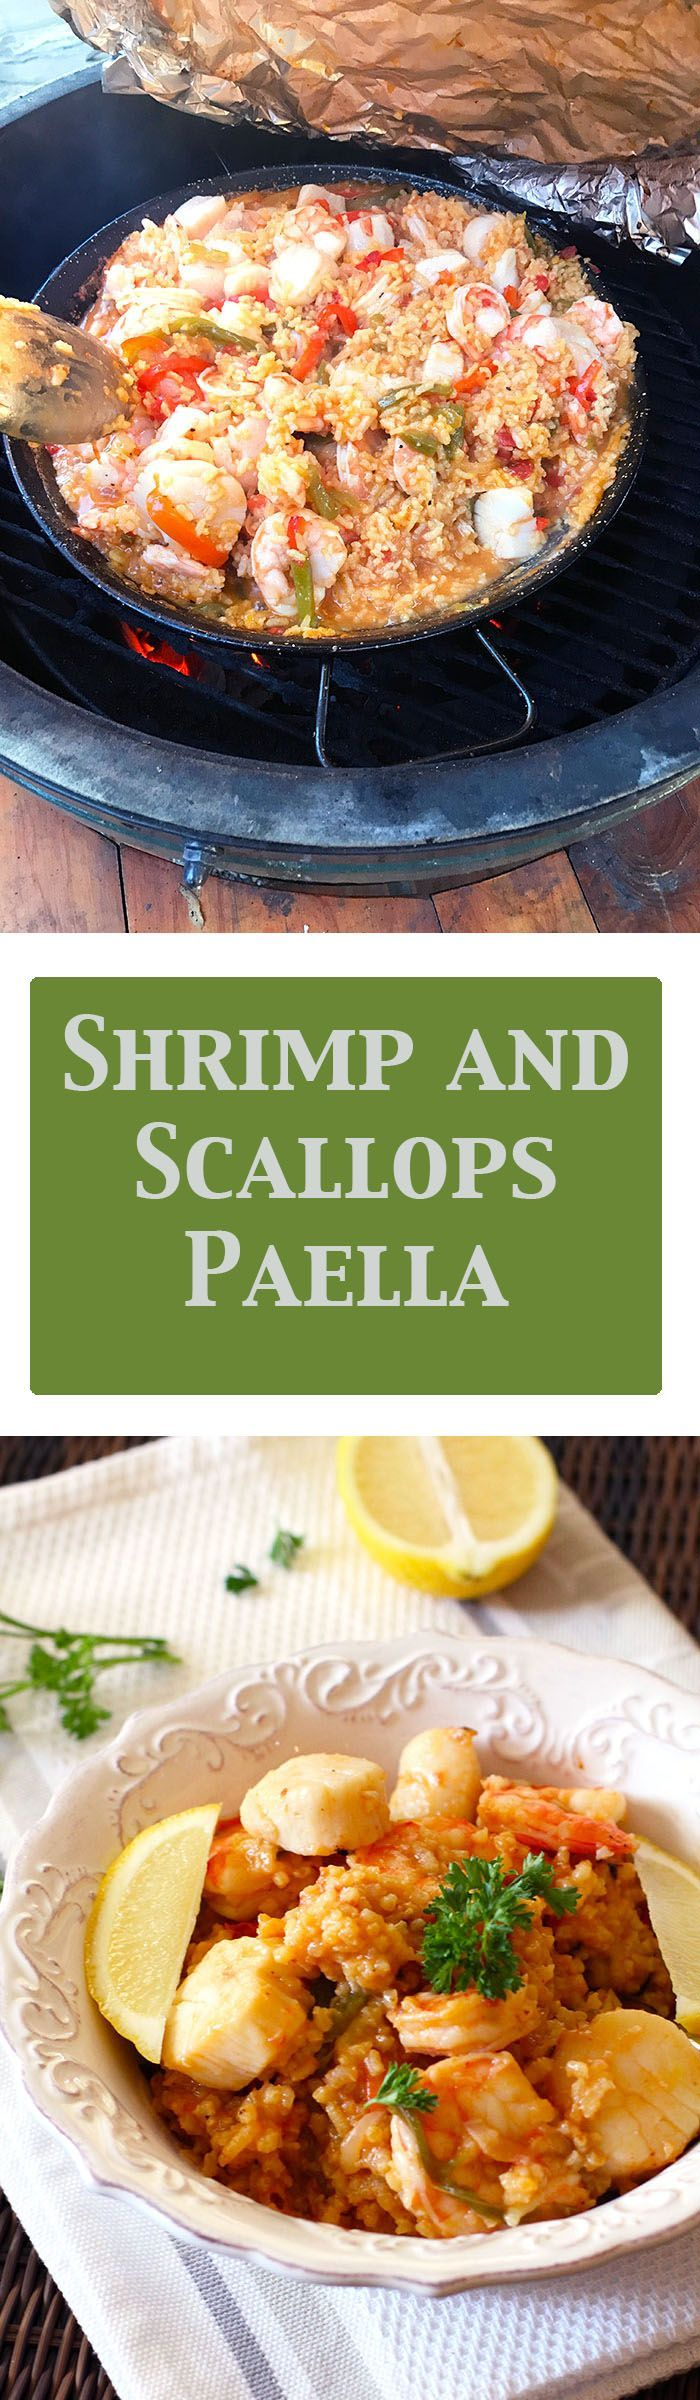 shrimp and scallops paella shrimps dish suebee homemaker veggies ...